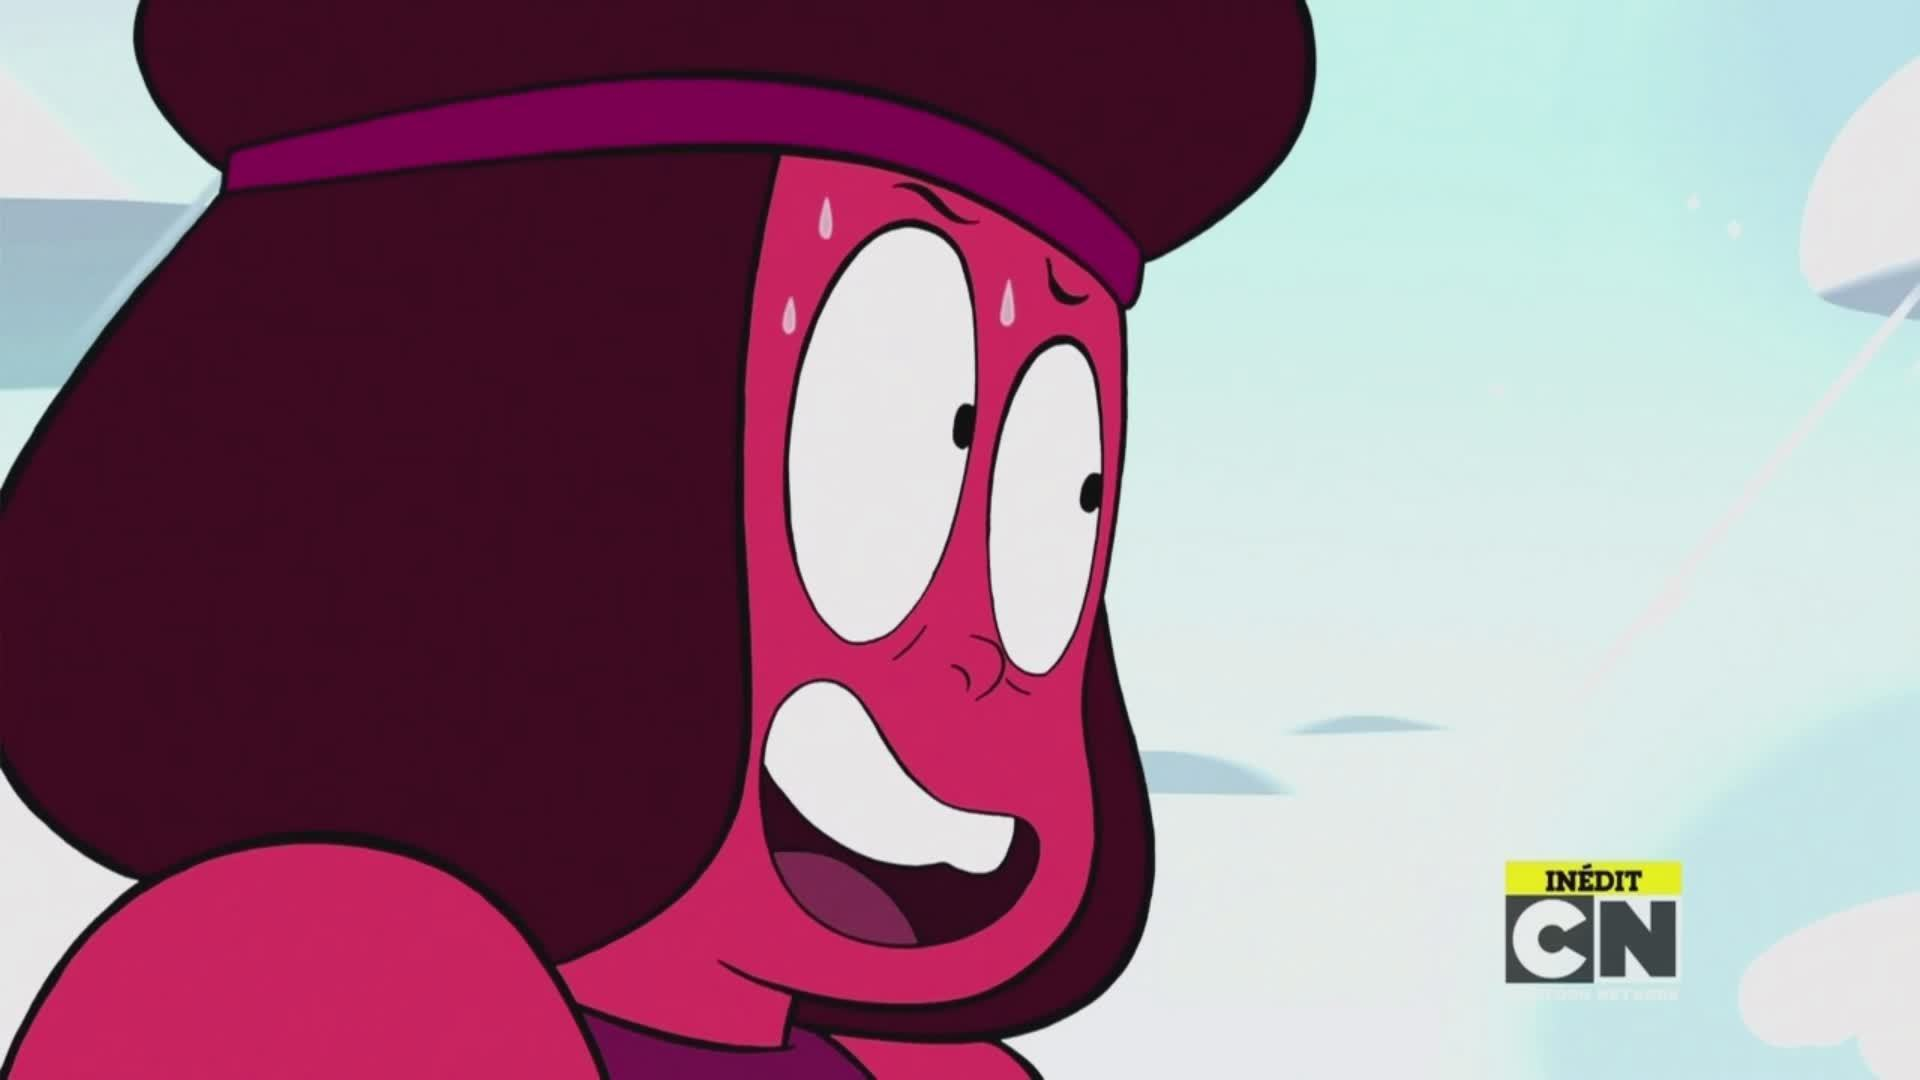 stevenuniverse, Episode Discussion - Hit the Diamond (reddit) GIFs